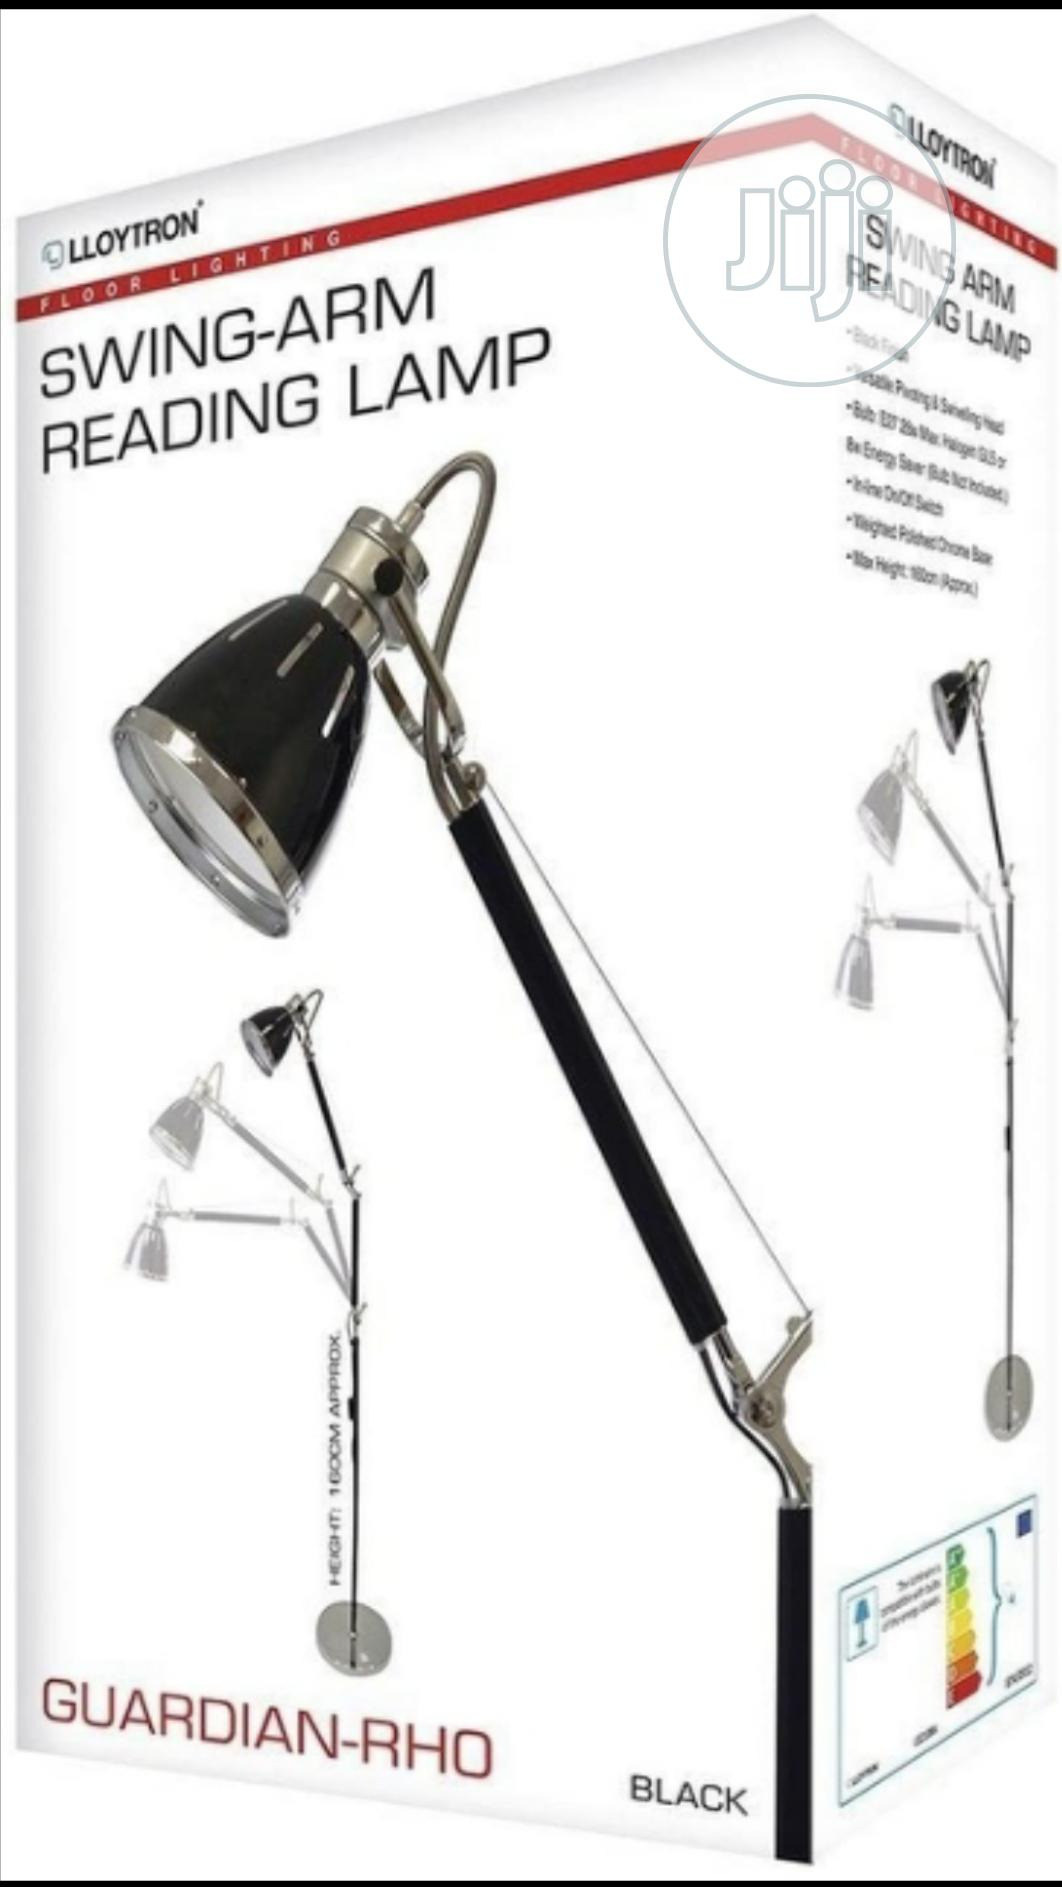 Lloytron Guardian-rho' Floor Reading Lamp Floor Standing160cm